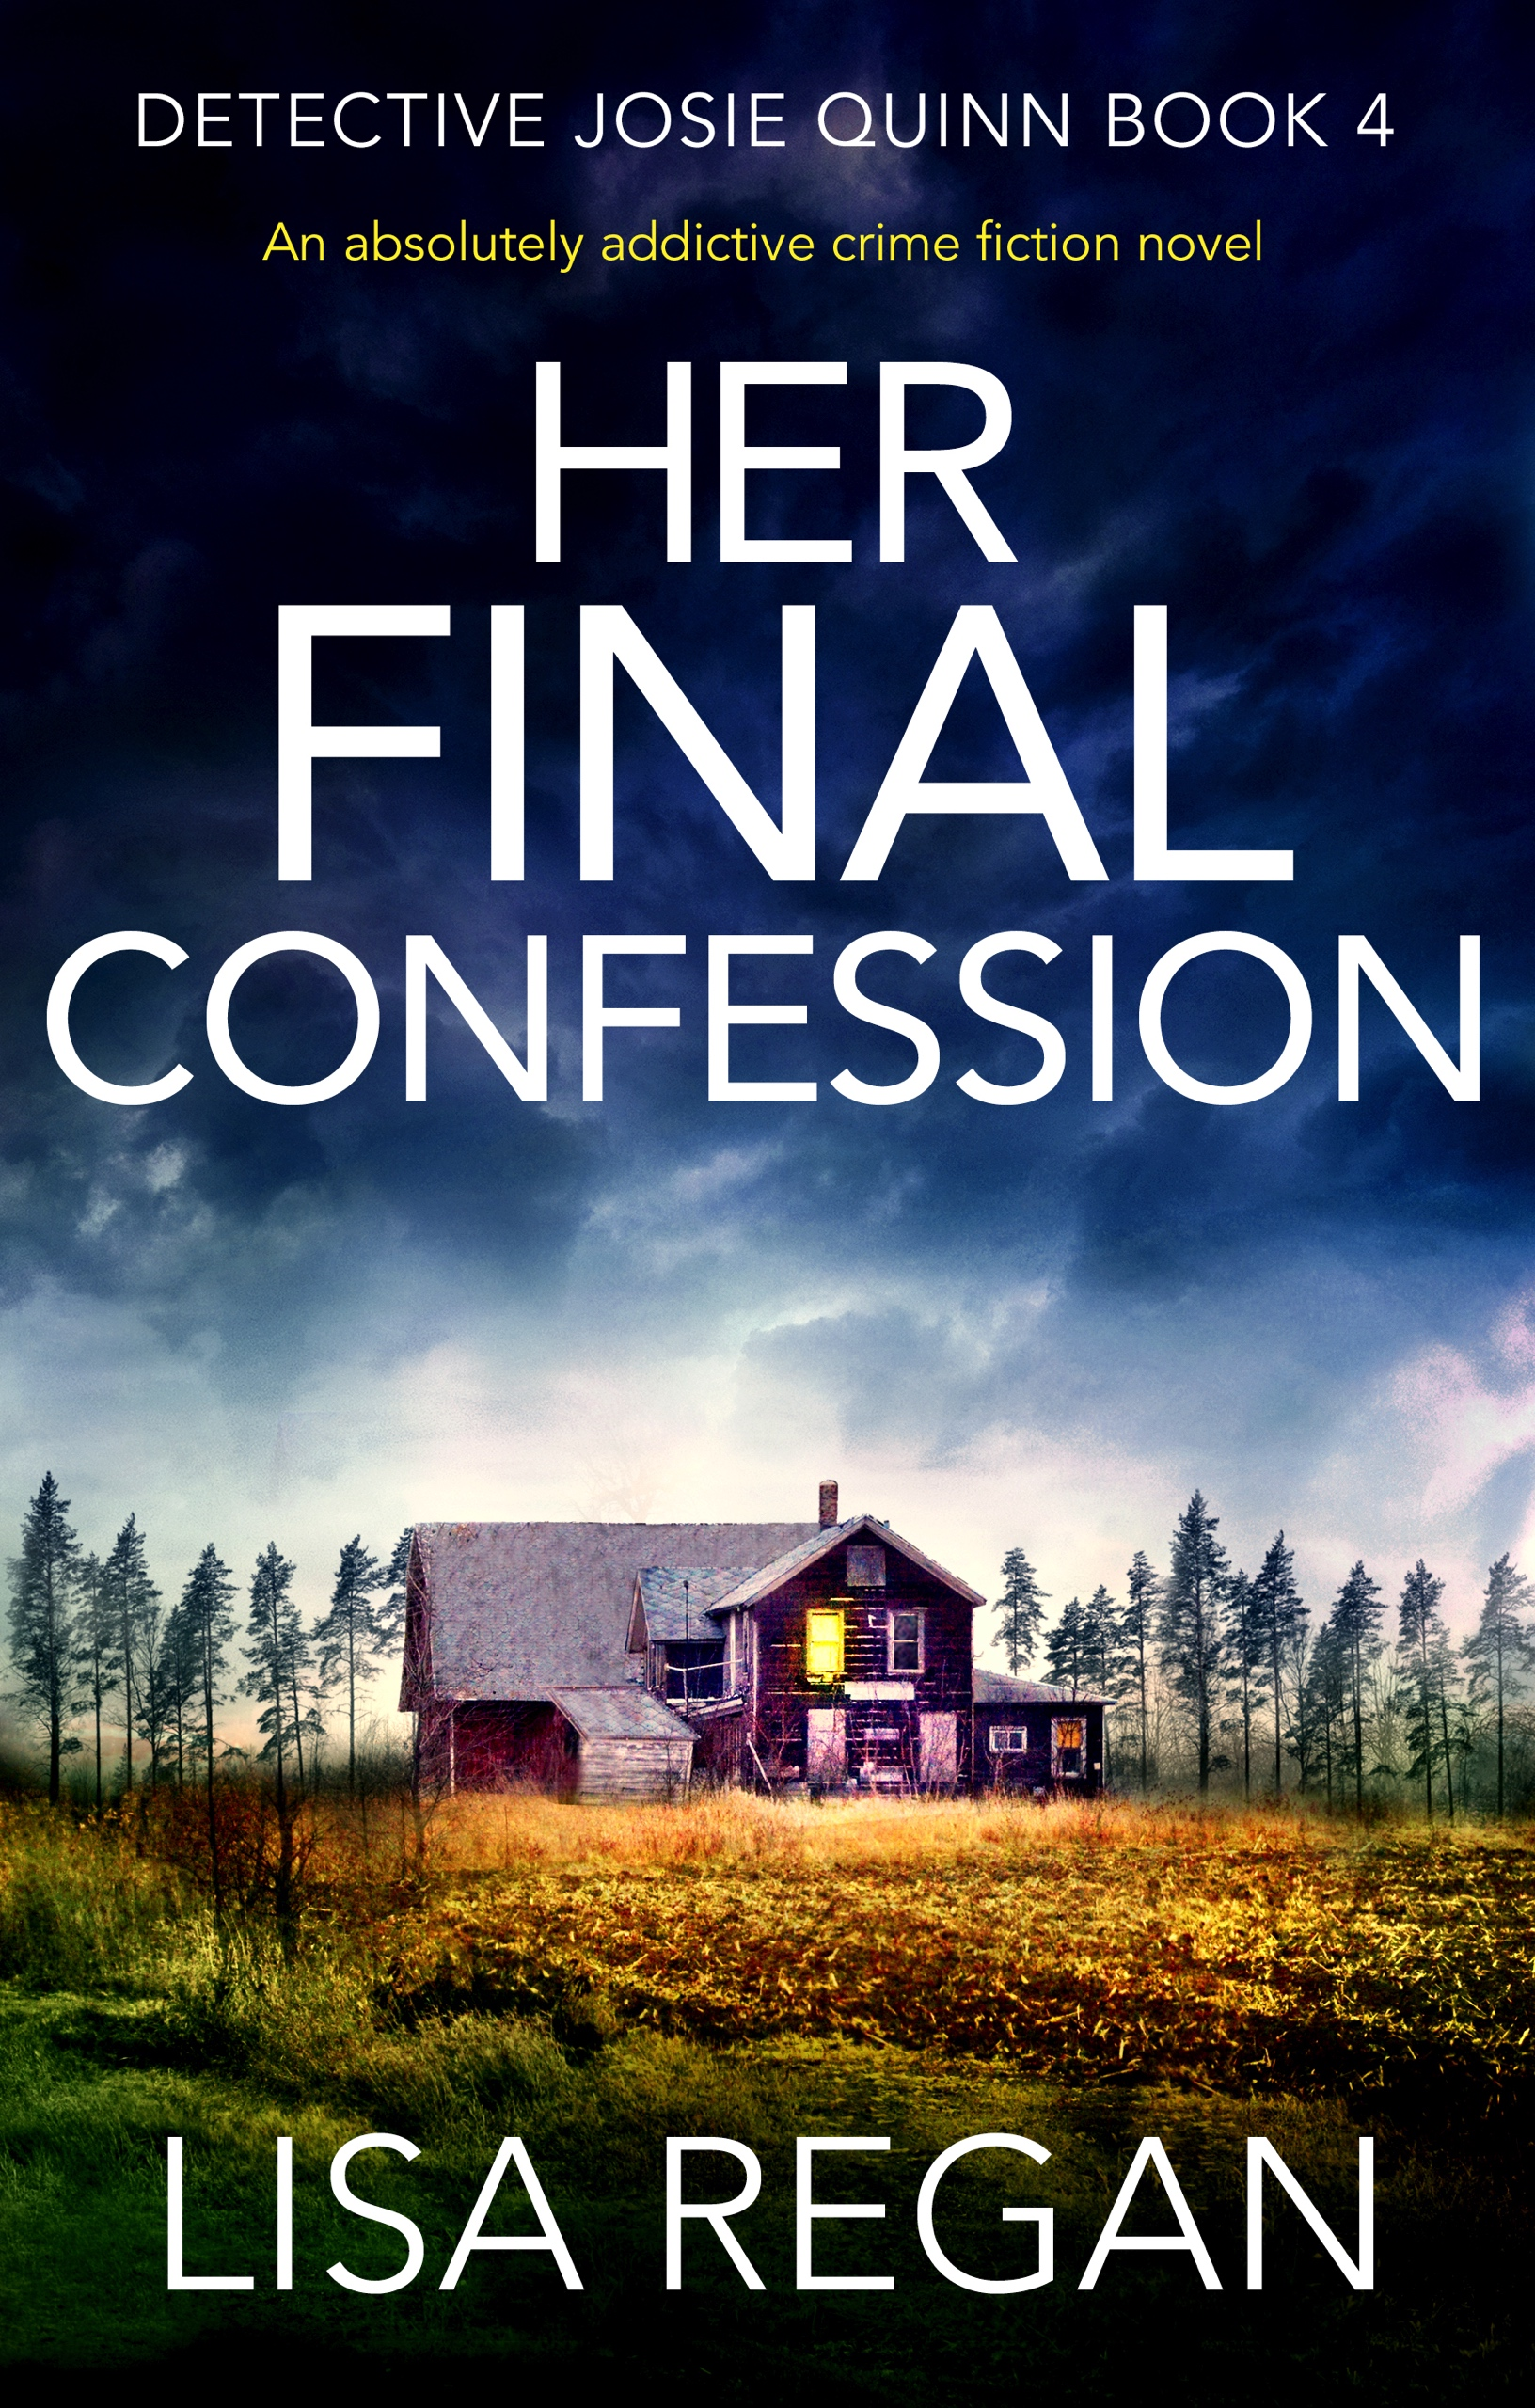 #BookReview of Her Final Confession by Lisa Regan @Lisalregan @nholten40 @bookouture